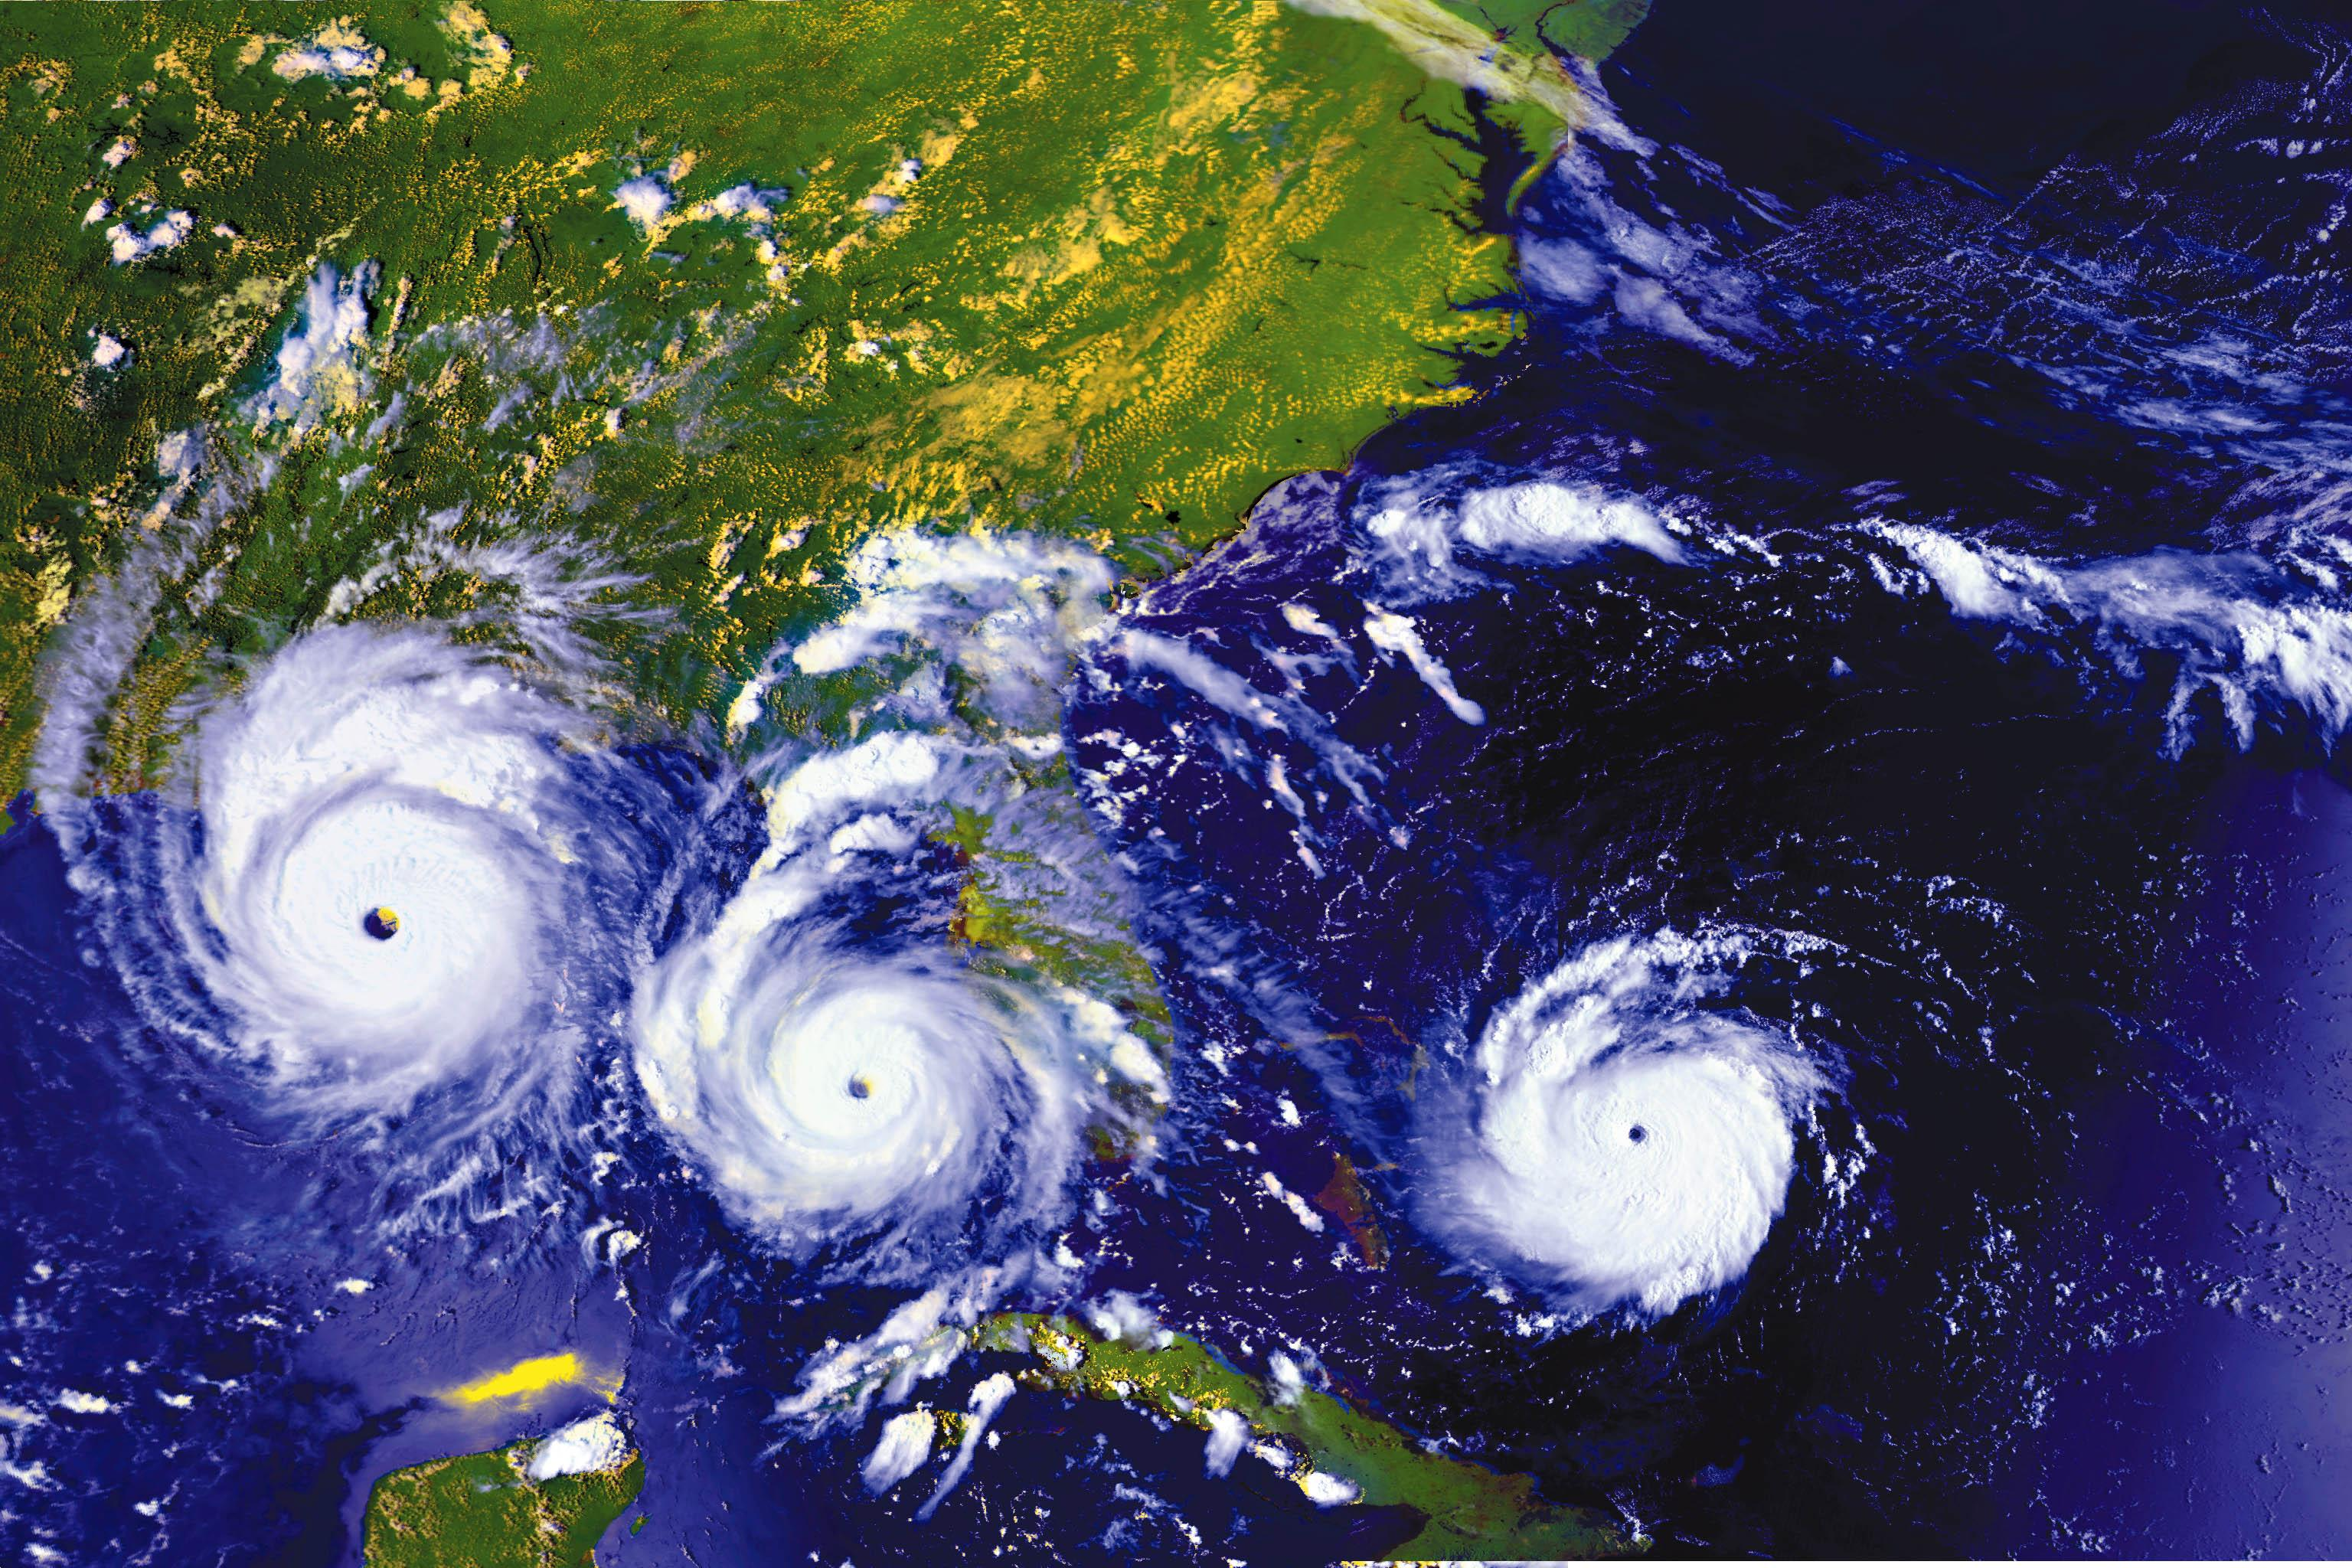 ... 25 August 1992 as the hurricane moves East to West. Image Credit: NASA